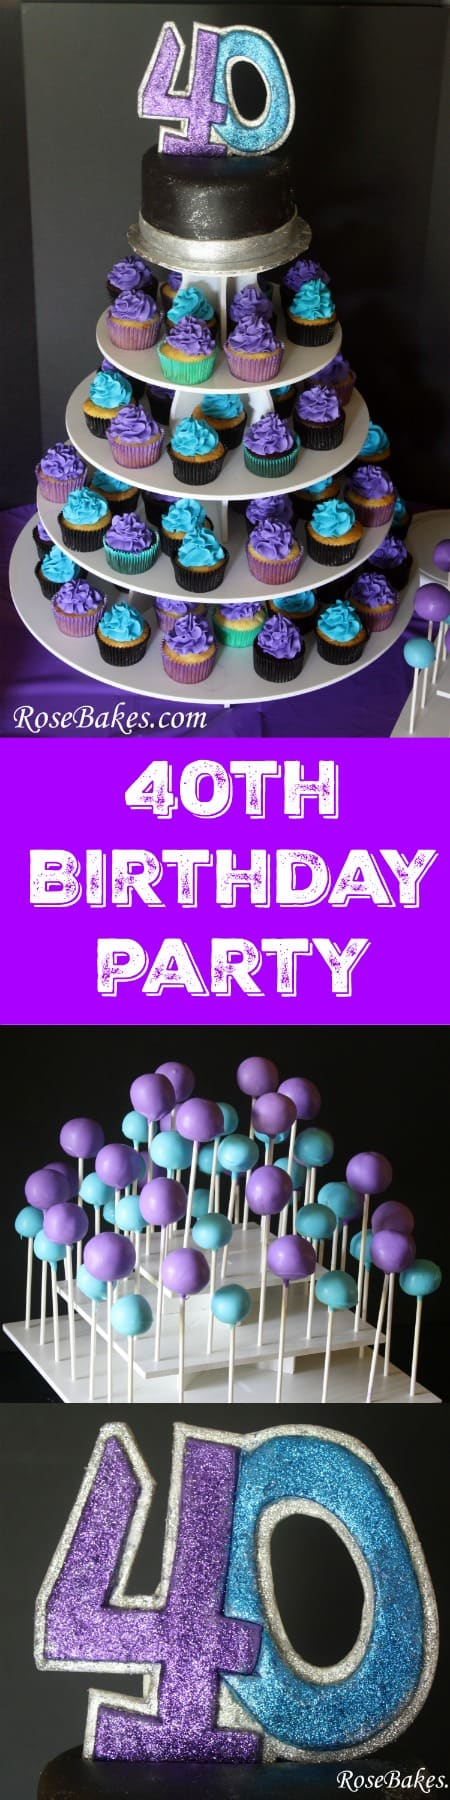 40th Birthday Party Ideas Cake, Cake Pops, Cupcakes, Decor!  Black, Purple & Turquoise Themed | Rose Bakes